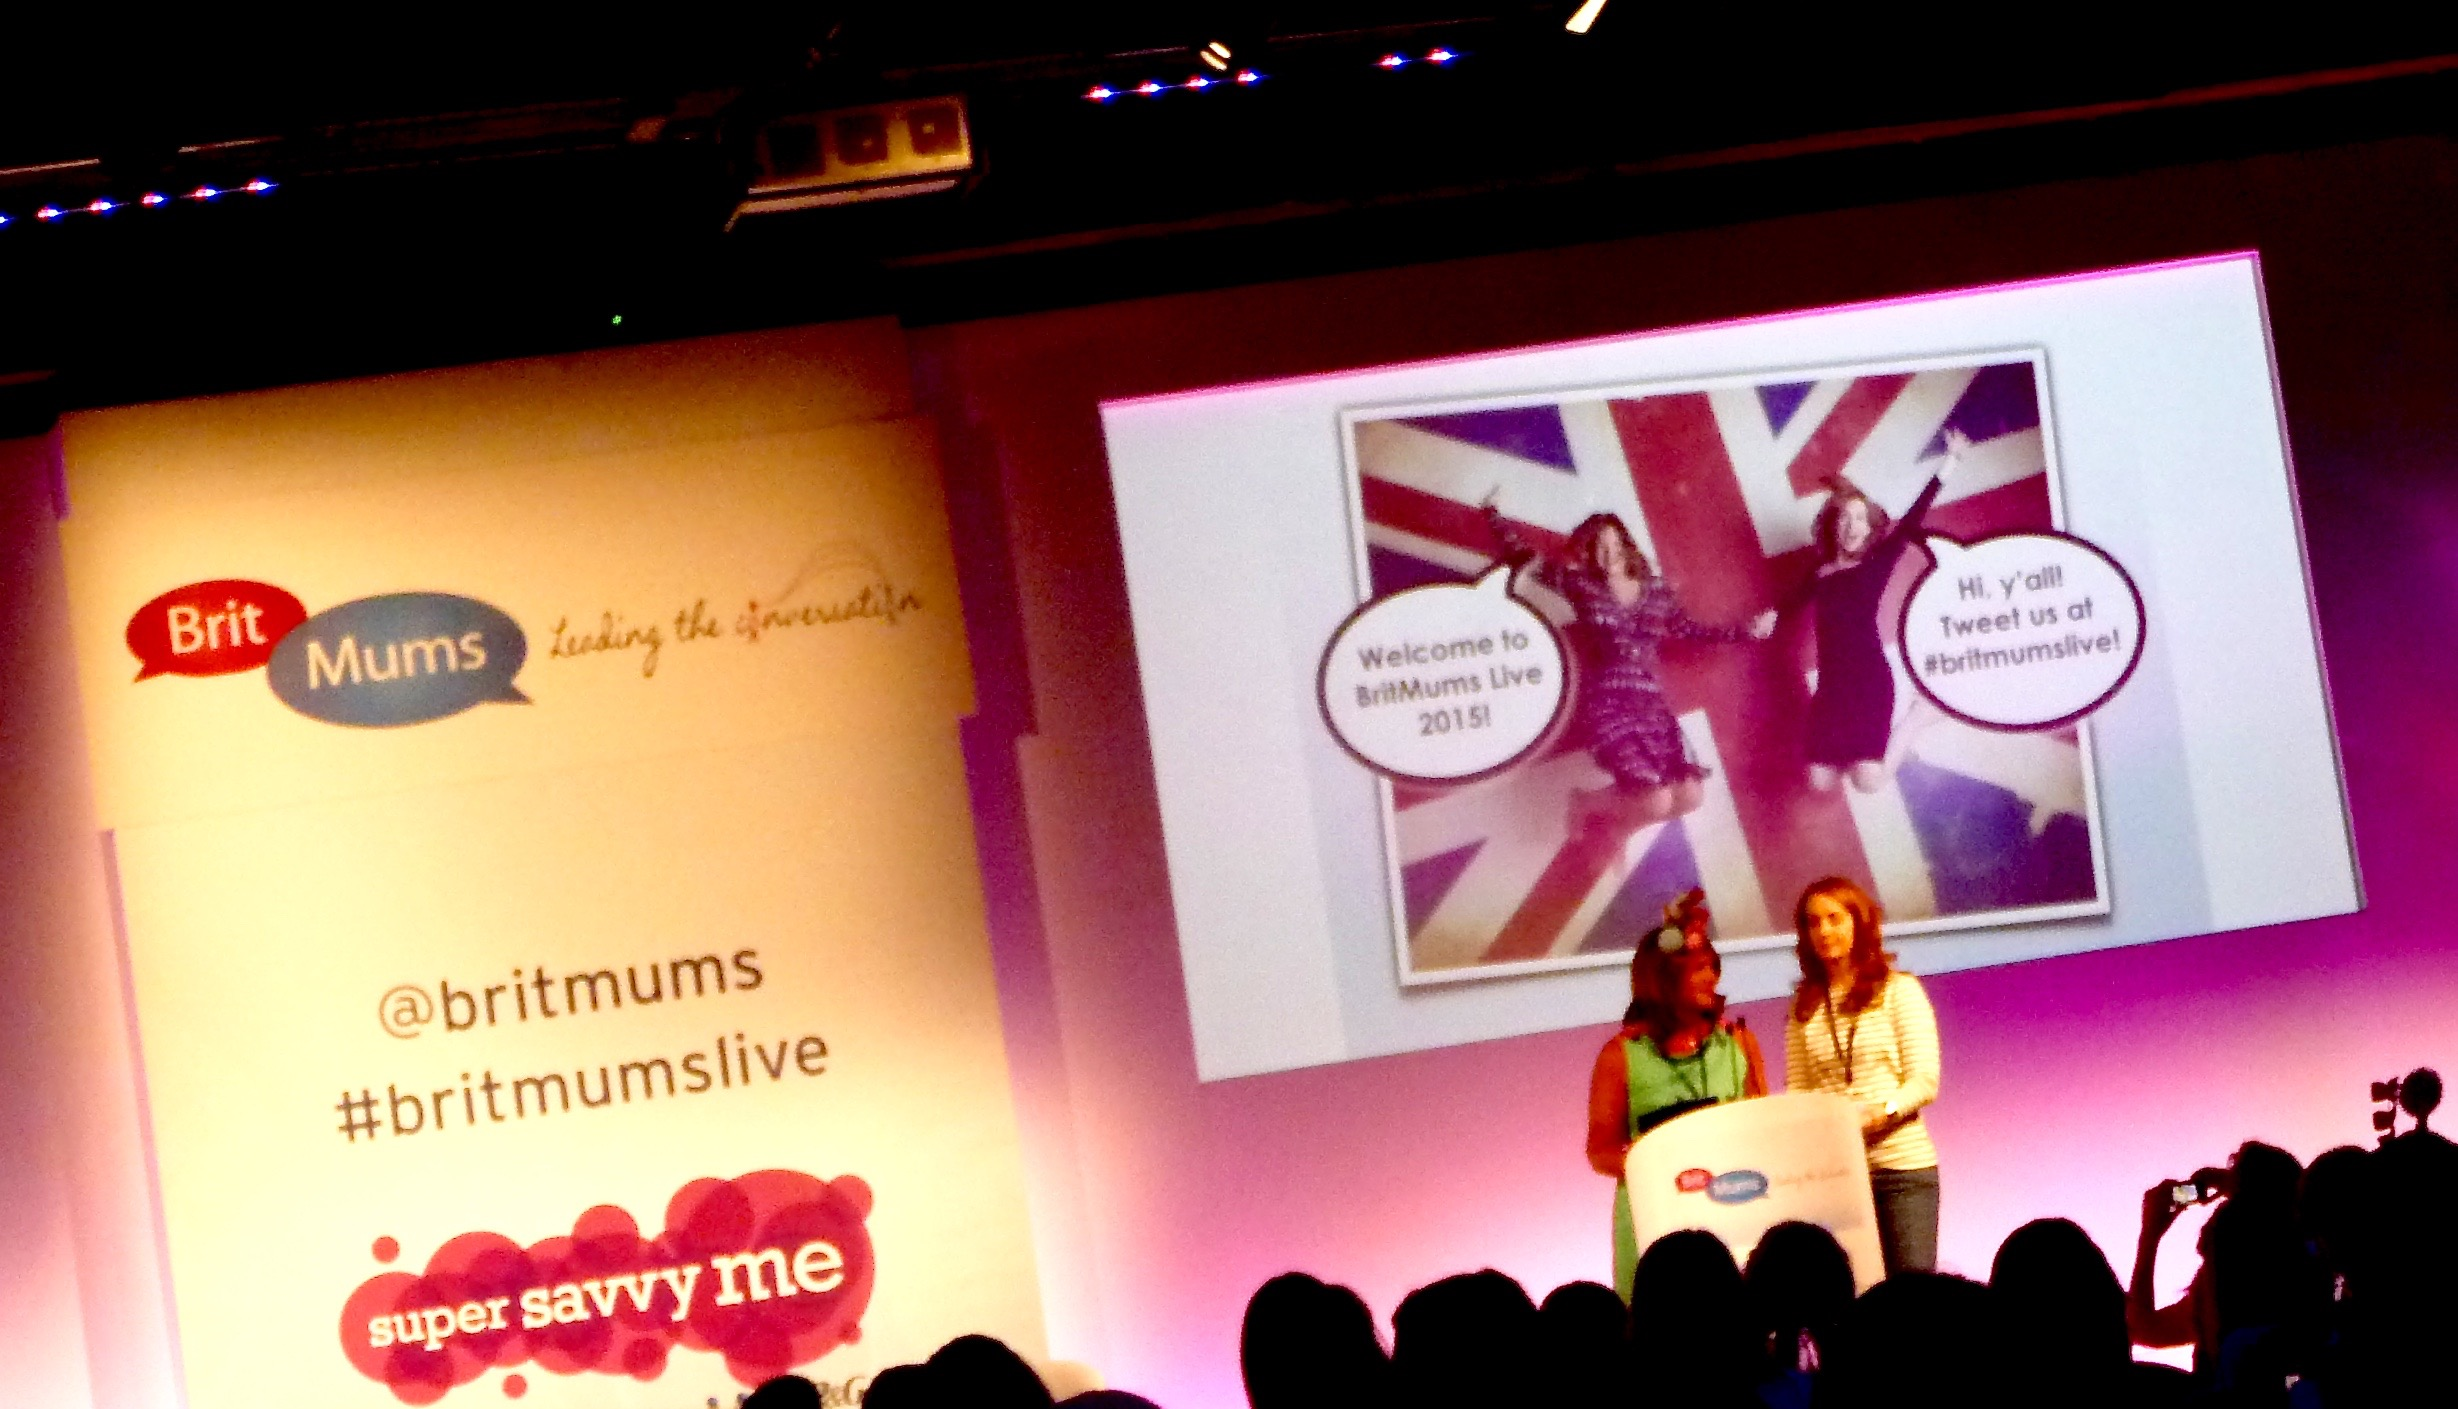 Welcome to BritMums Live 2015.